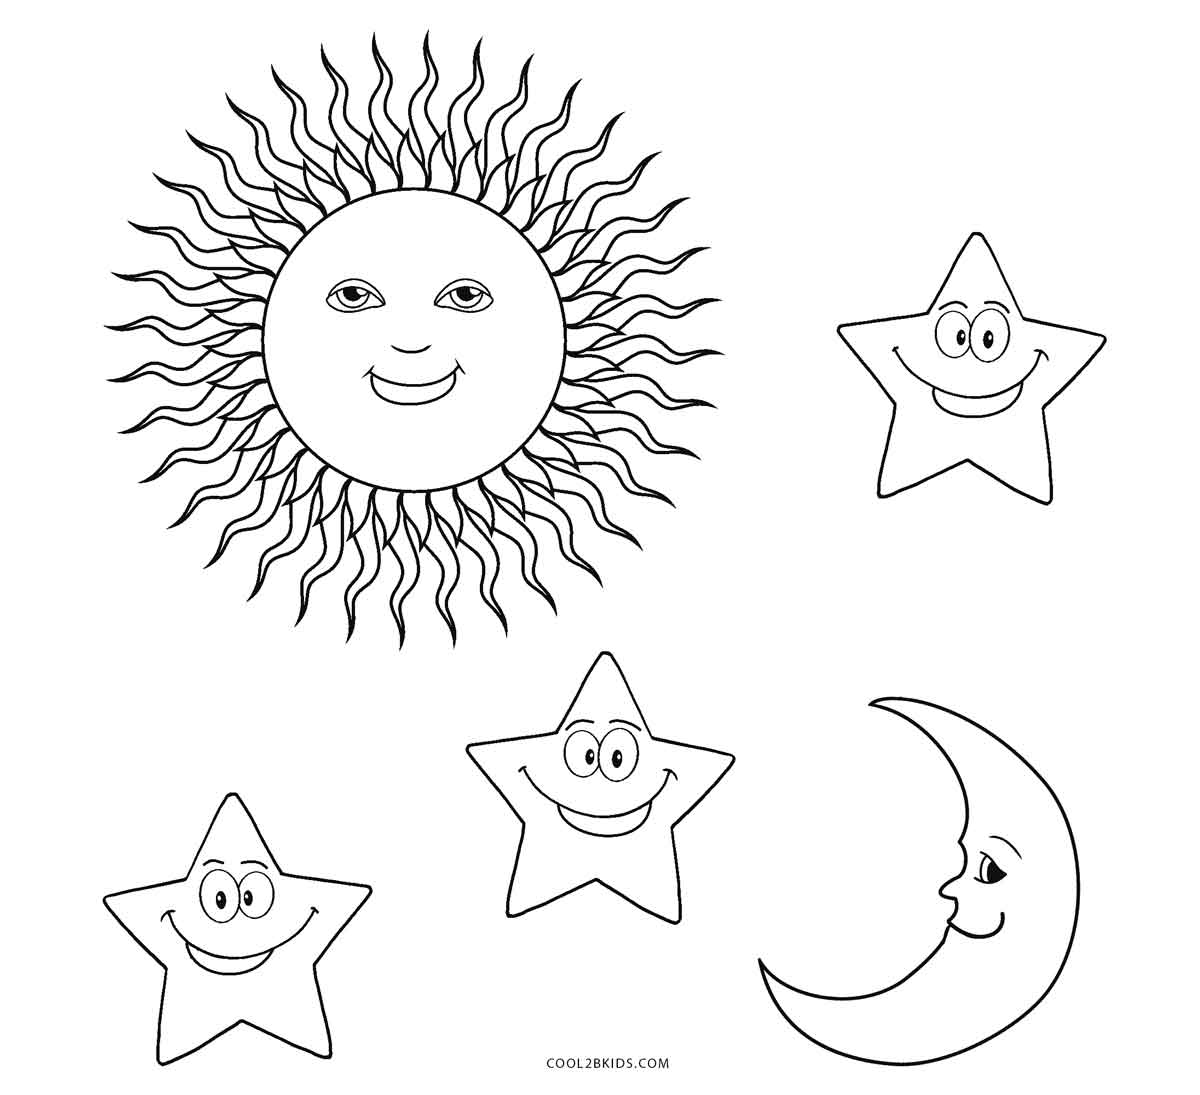 Free Printable Sun Coloring Pages